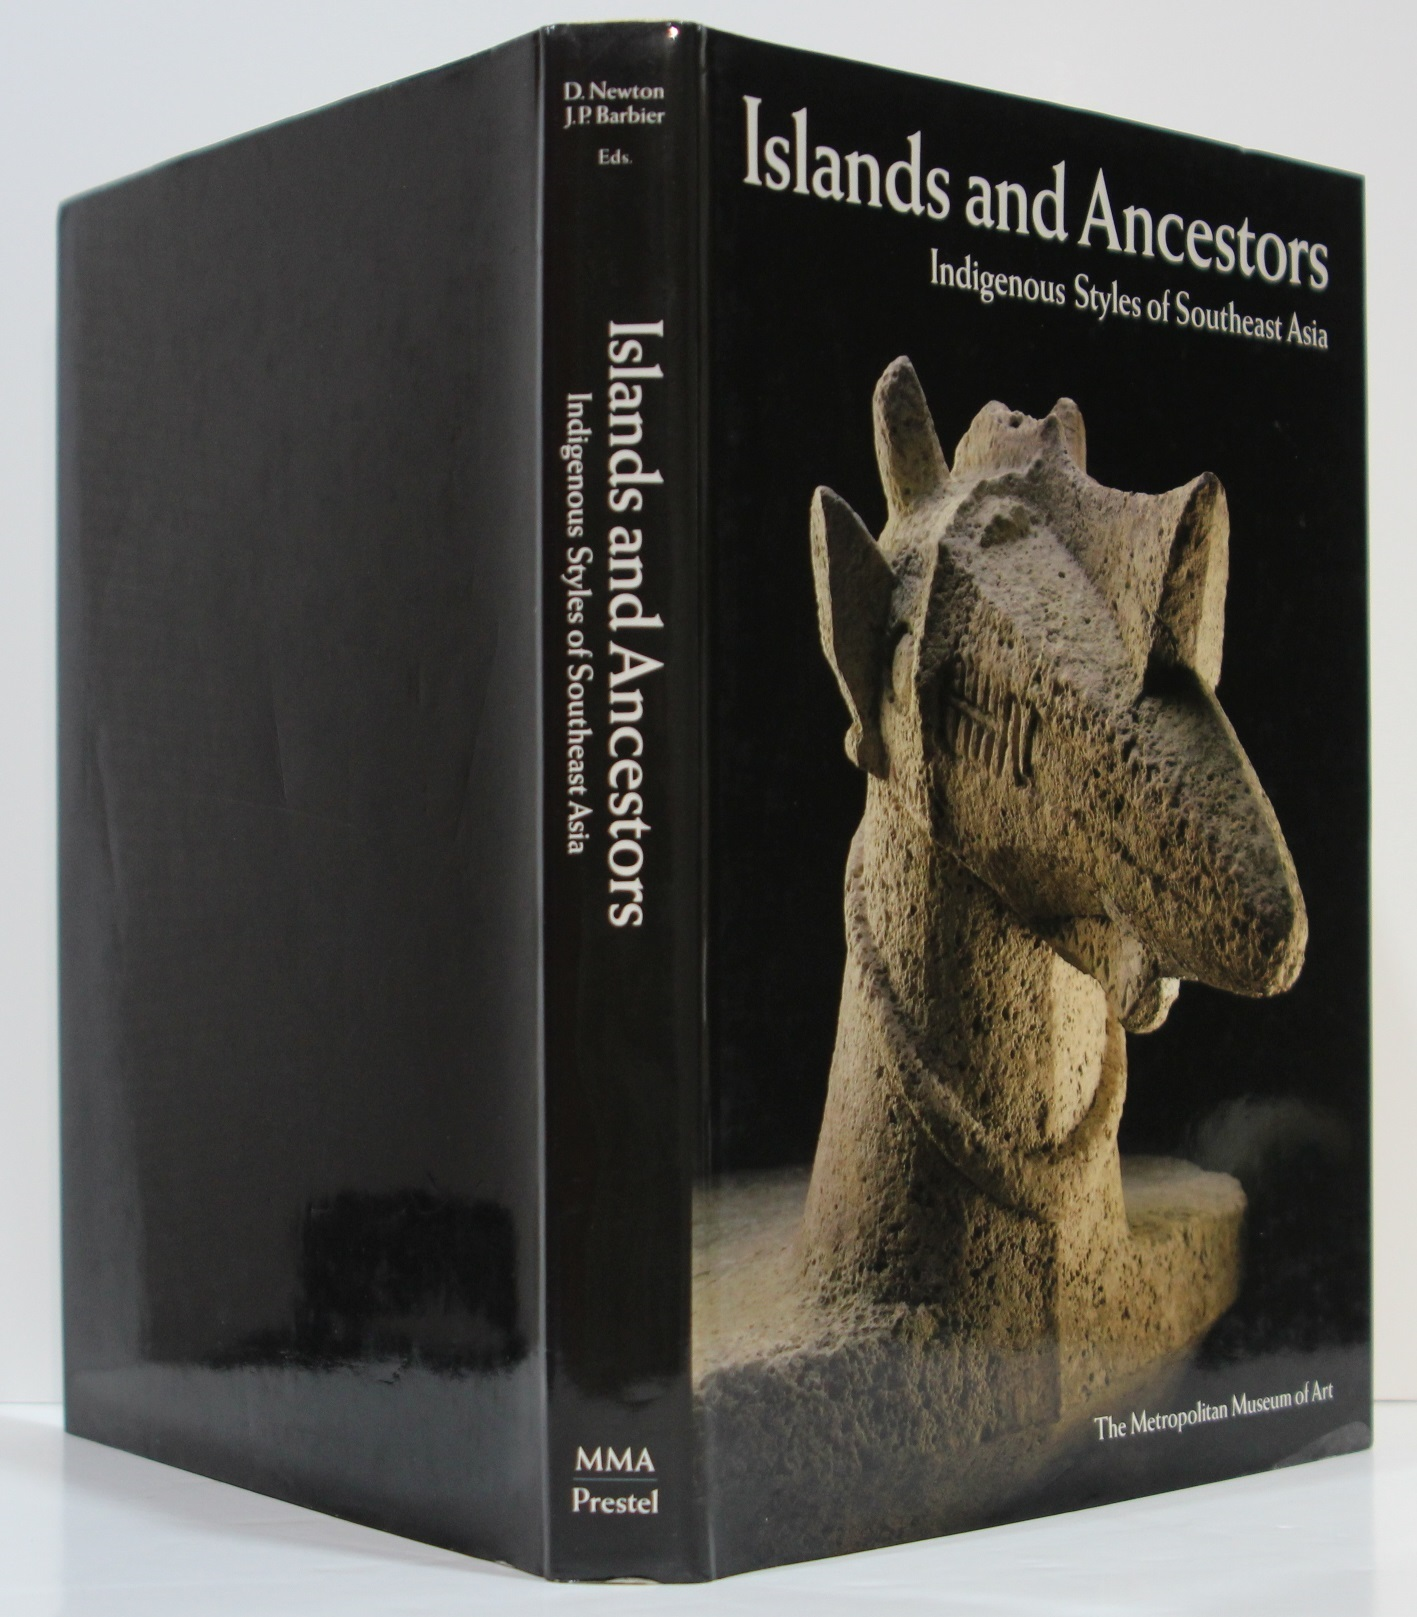 Islands and Ancestors. Indigenous Styles of Southeast Asia. Couvertures.